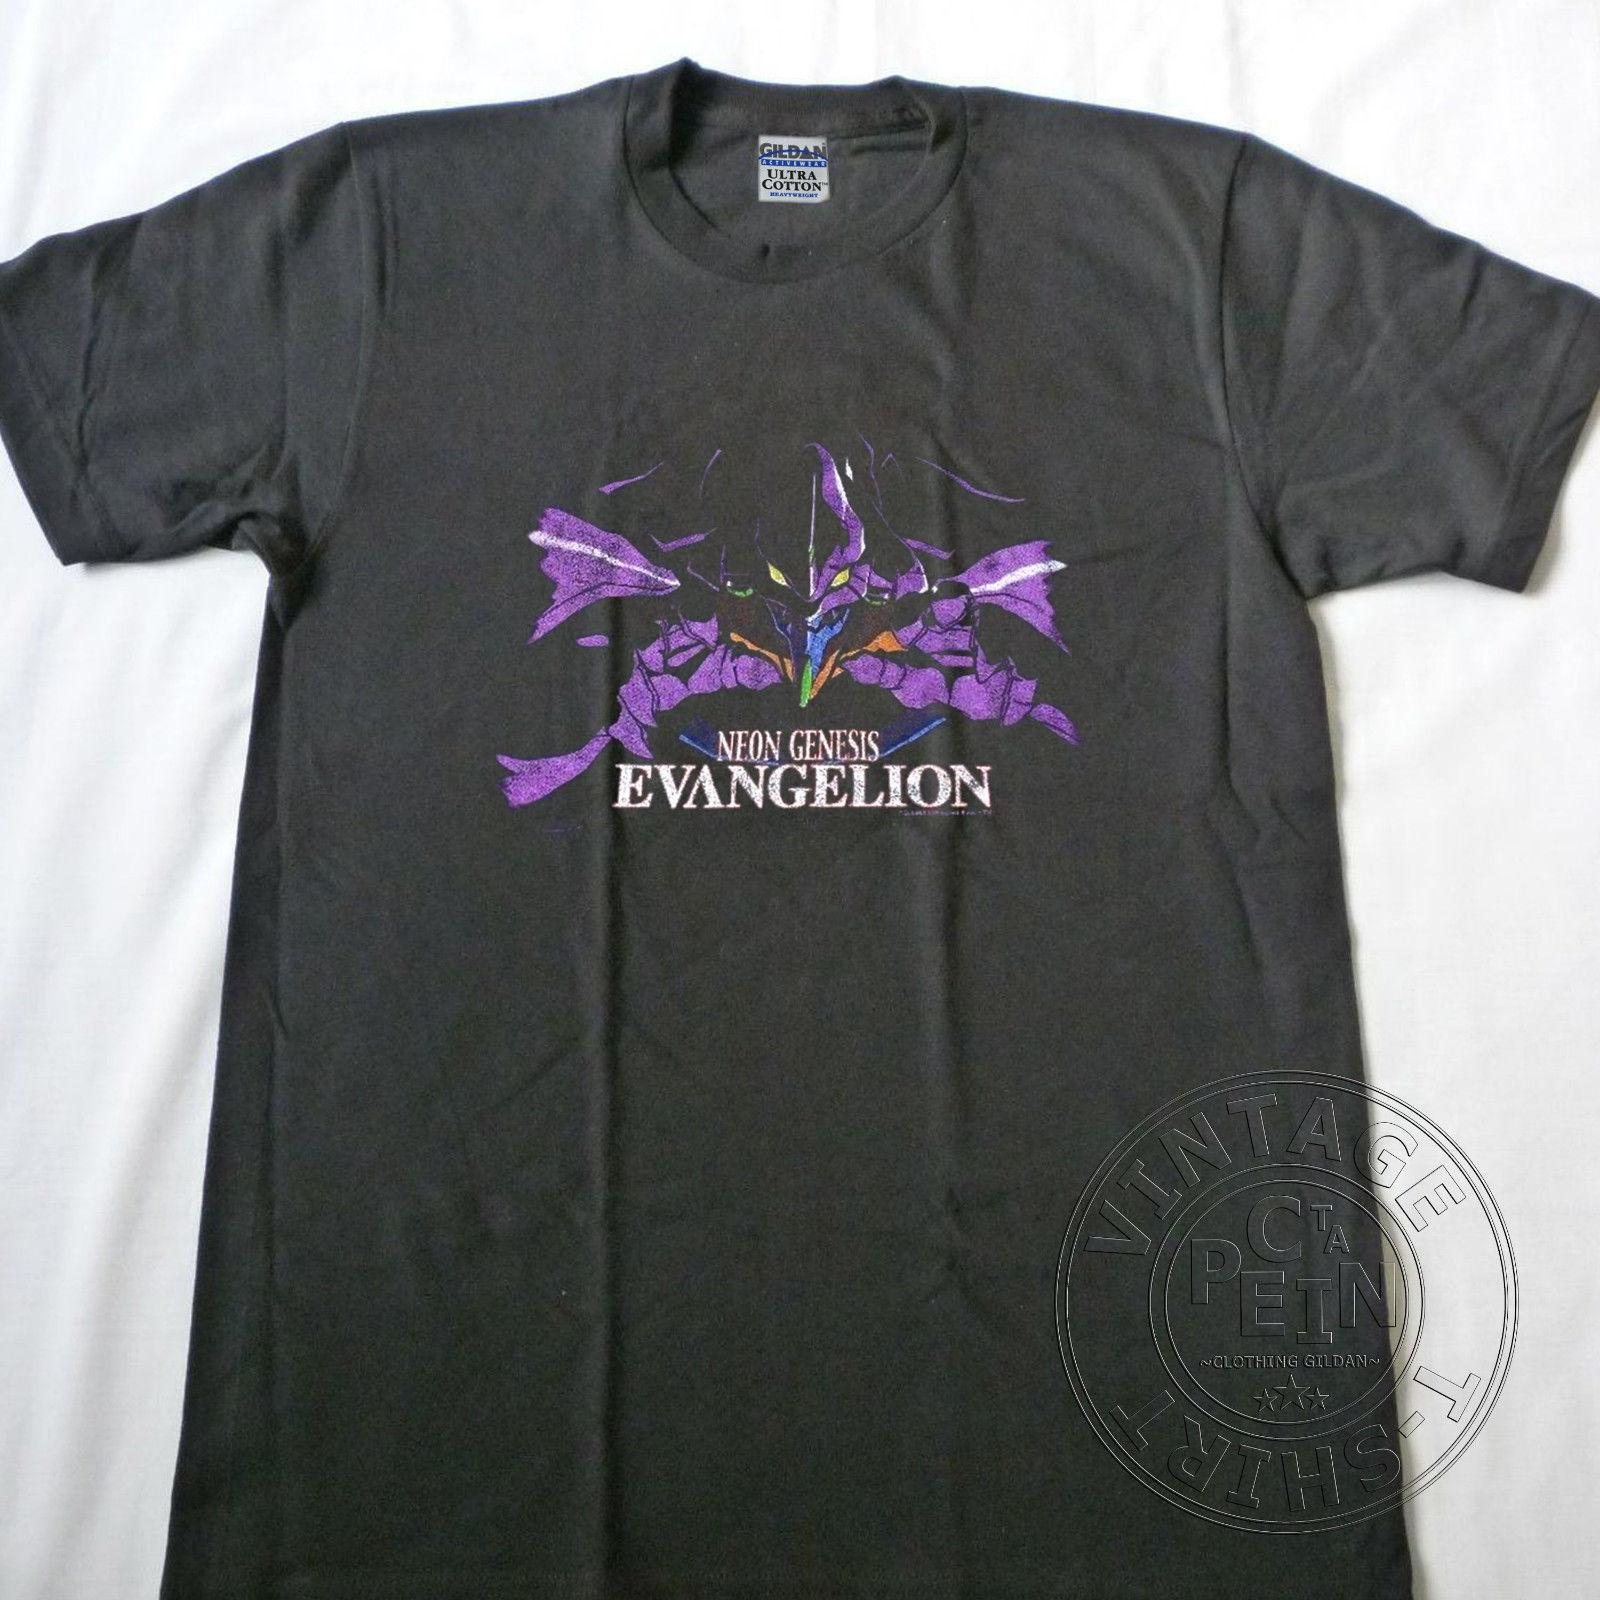 Vintage 1997 Neon Genesis Evangelion 90s Anime Akira Ghost In The Shell Reprintfunny Unisex Tee As Tee Shirts Awesome T Shirts For Men From Topclassaa 12 96 Dhgate Com